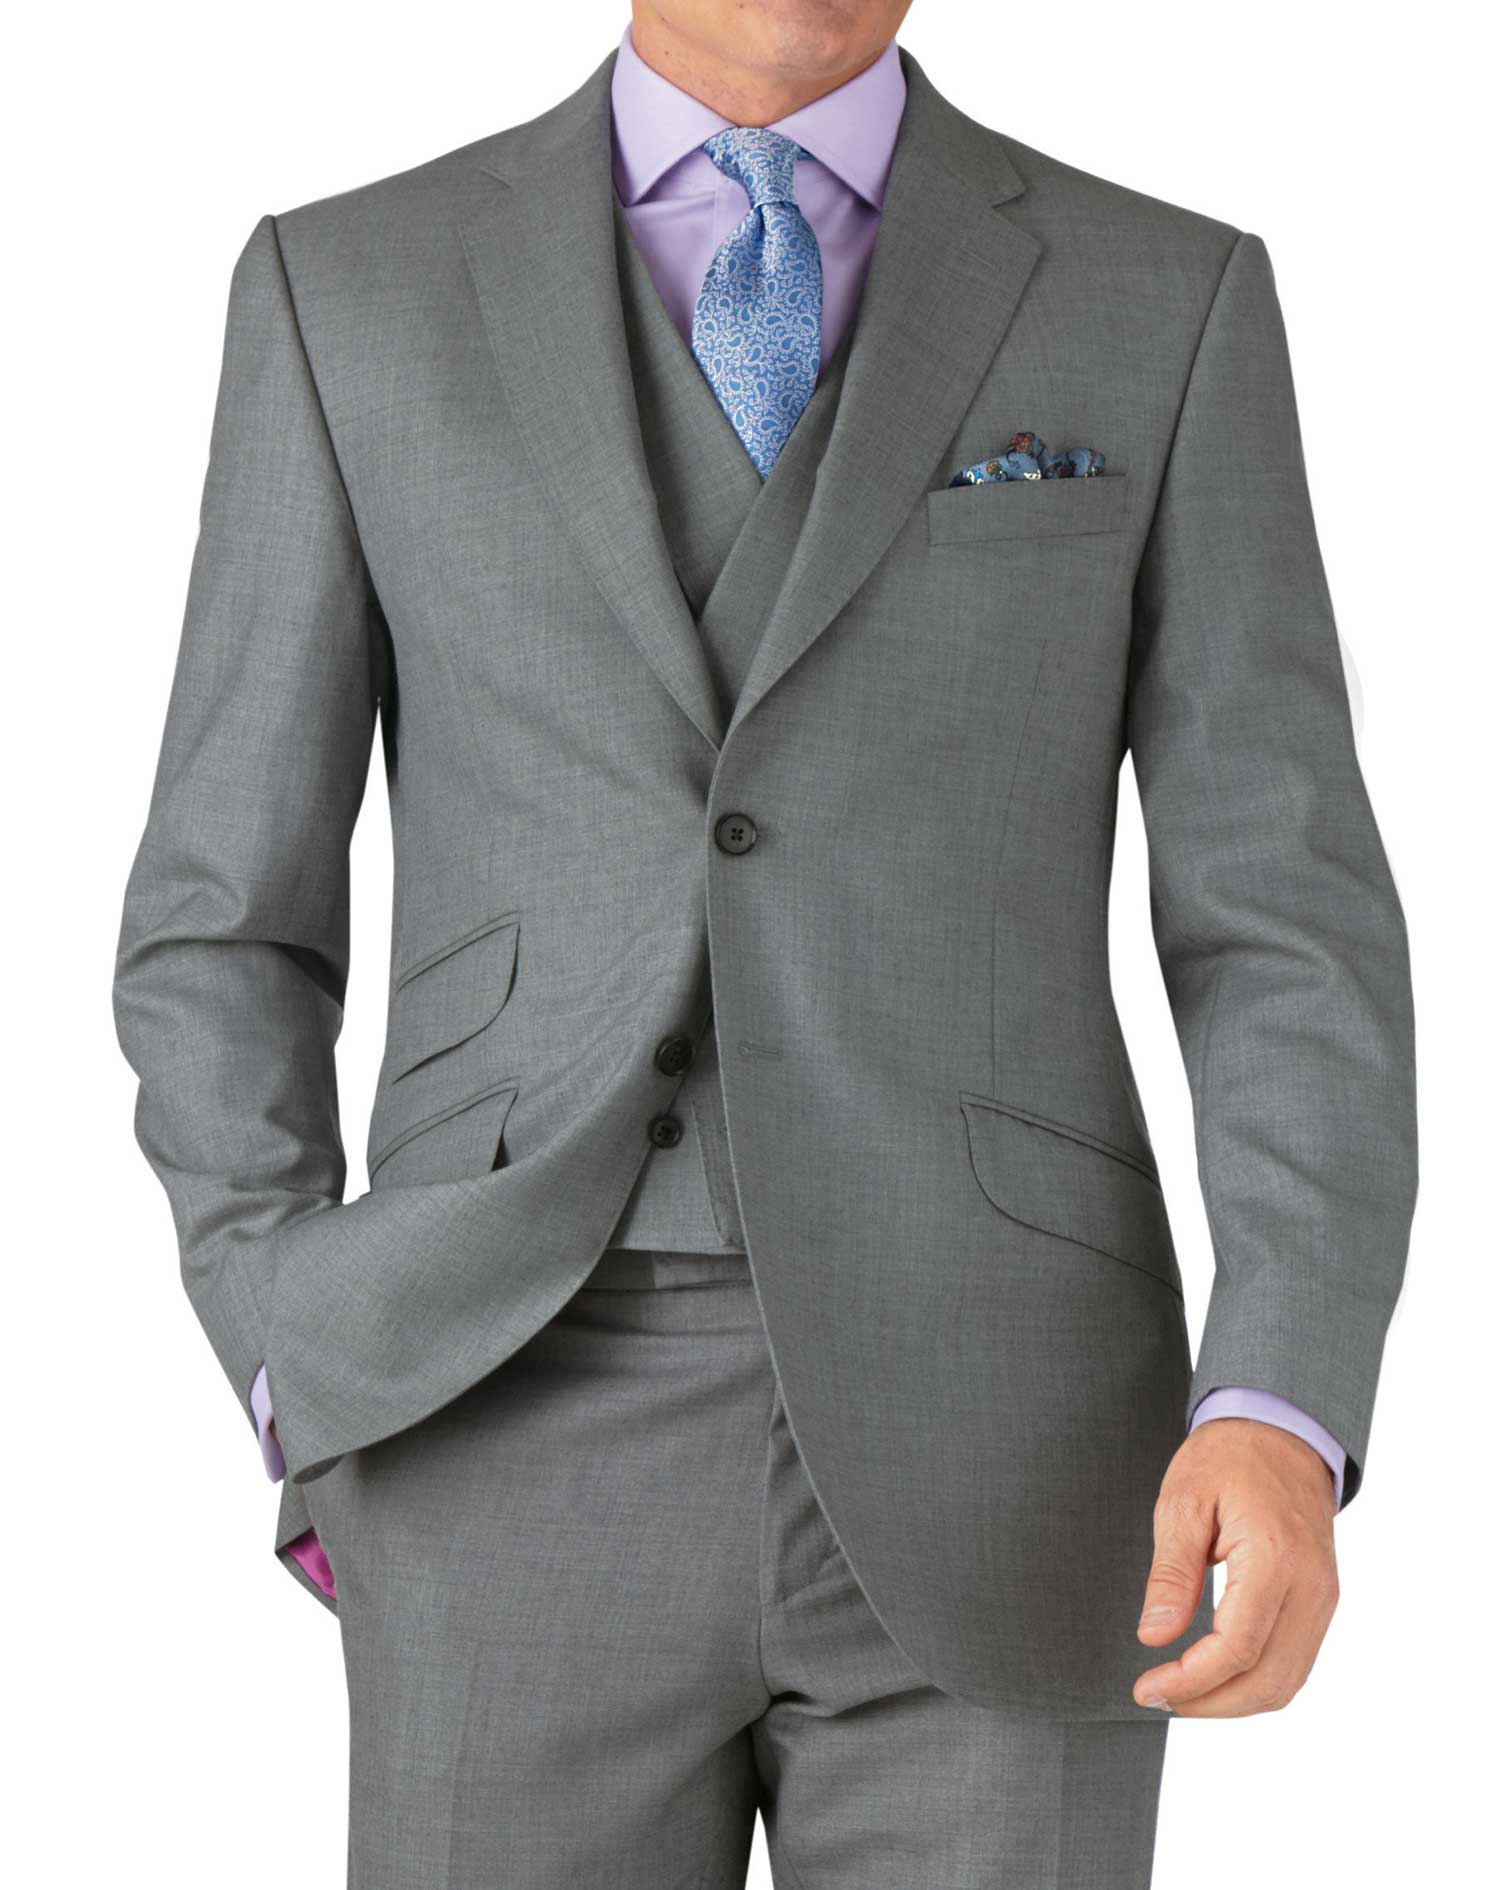 Silver classic fit British Panama luxury suit jacket